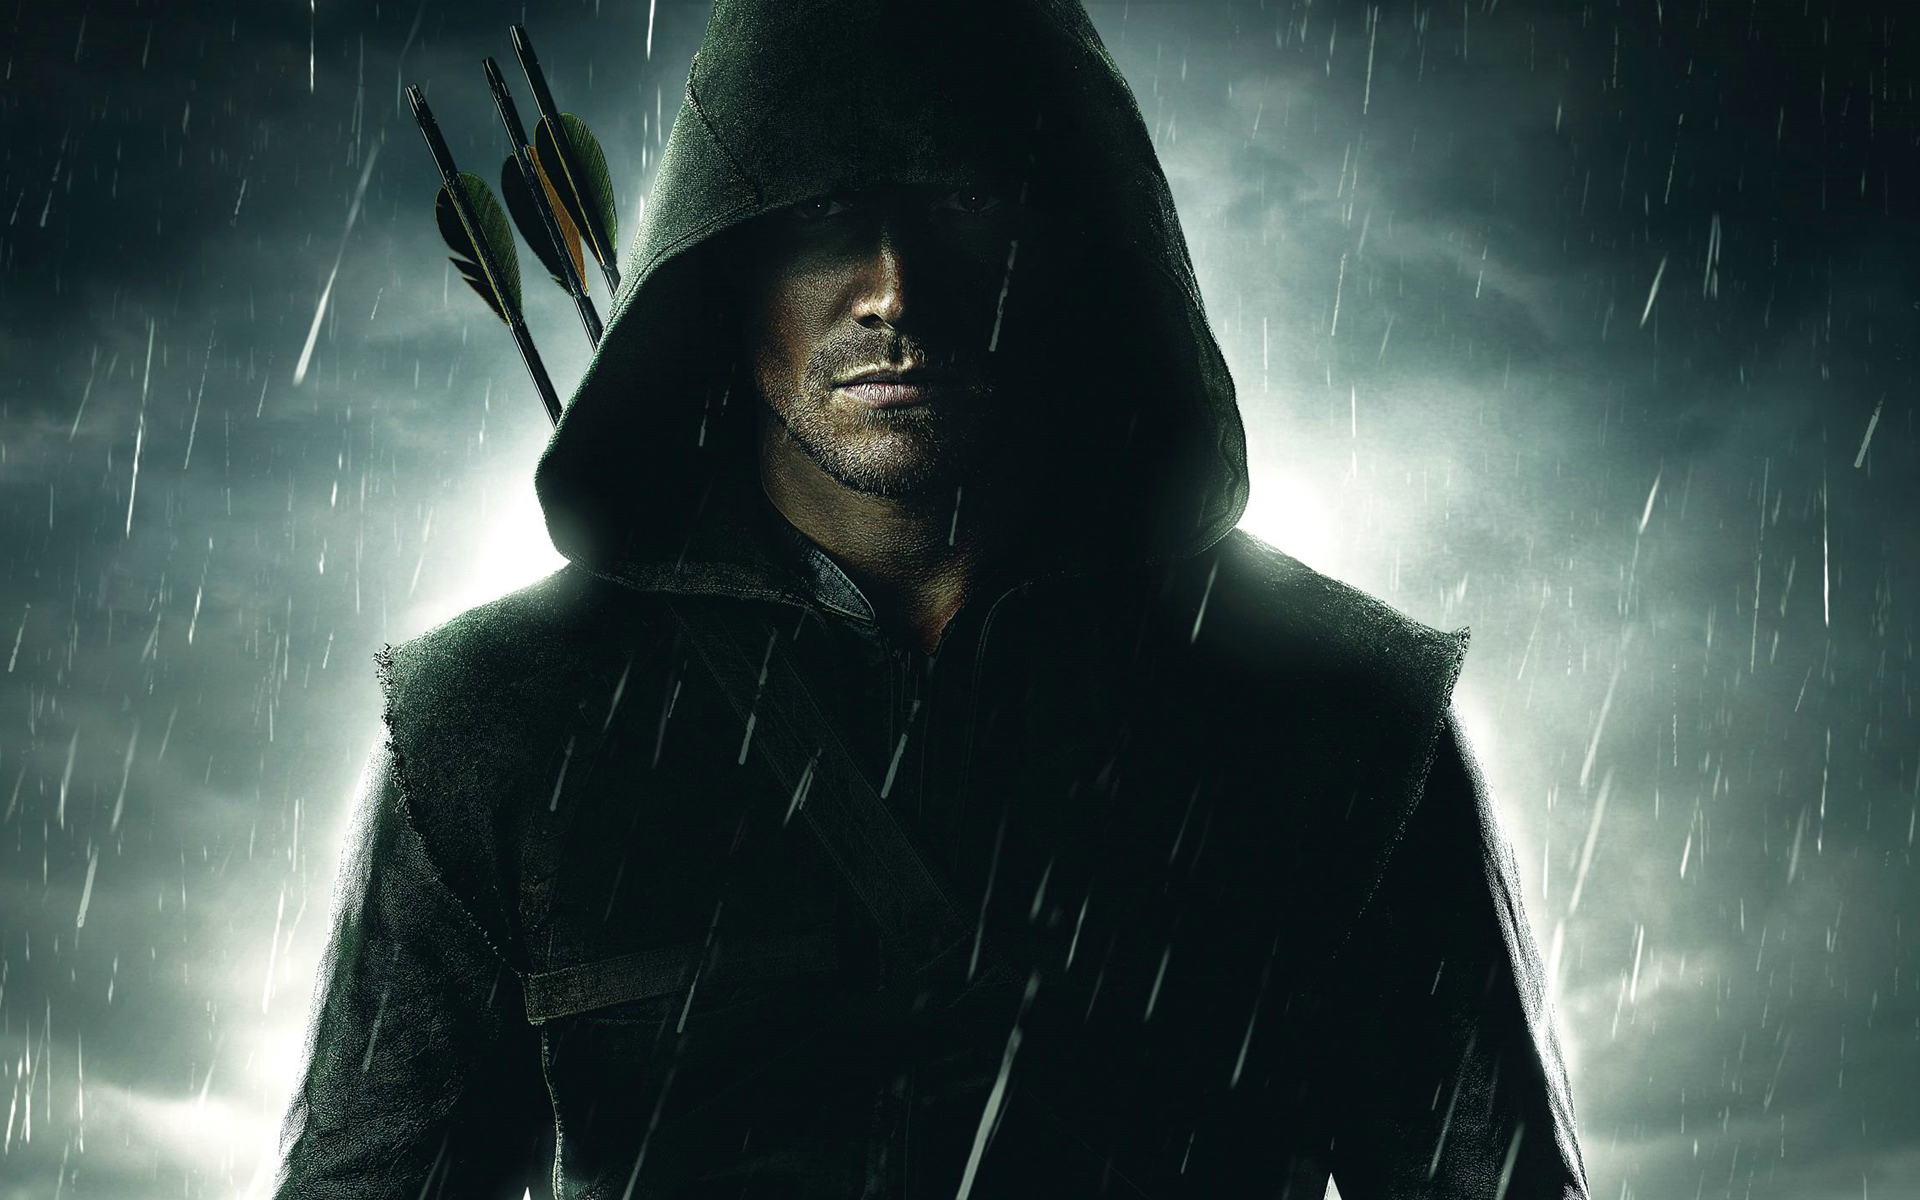 Arrow arrow cw 35030067 1920 1200jpg 1920x1200